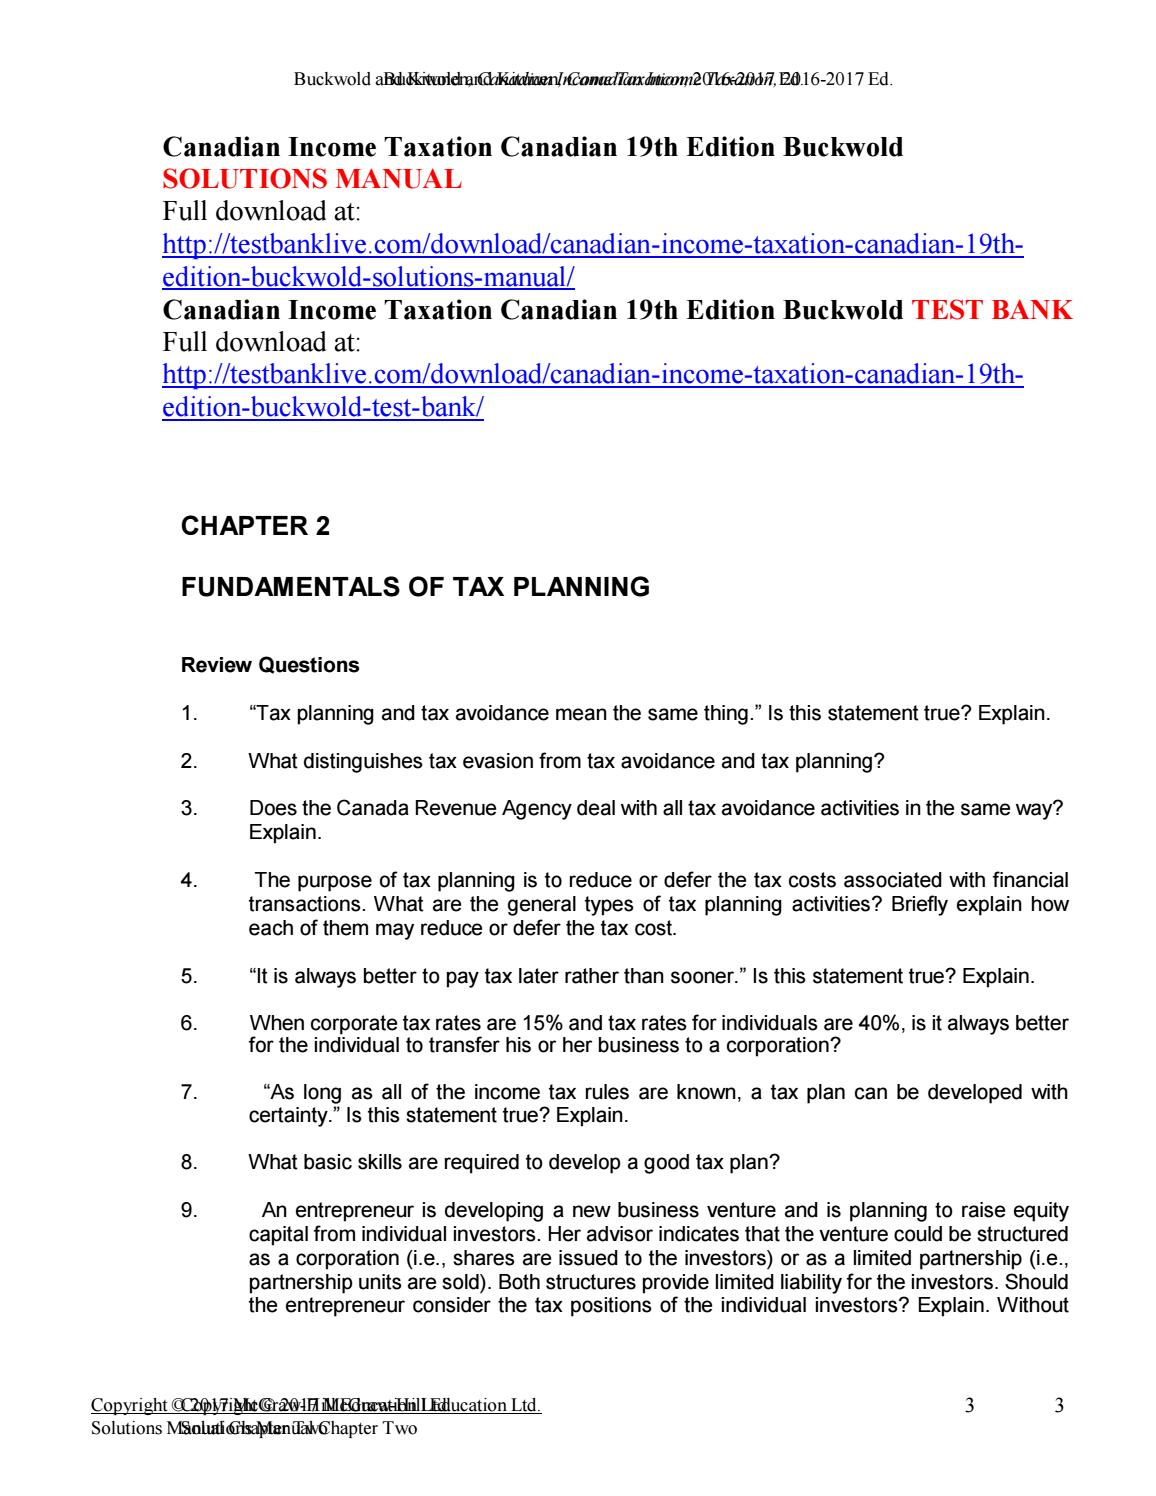 Canadian income taxation canadian 19th edition buckwold solutions manual by  Aurora1234 - issuu